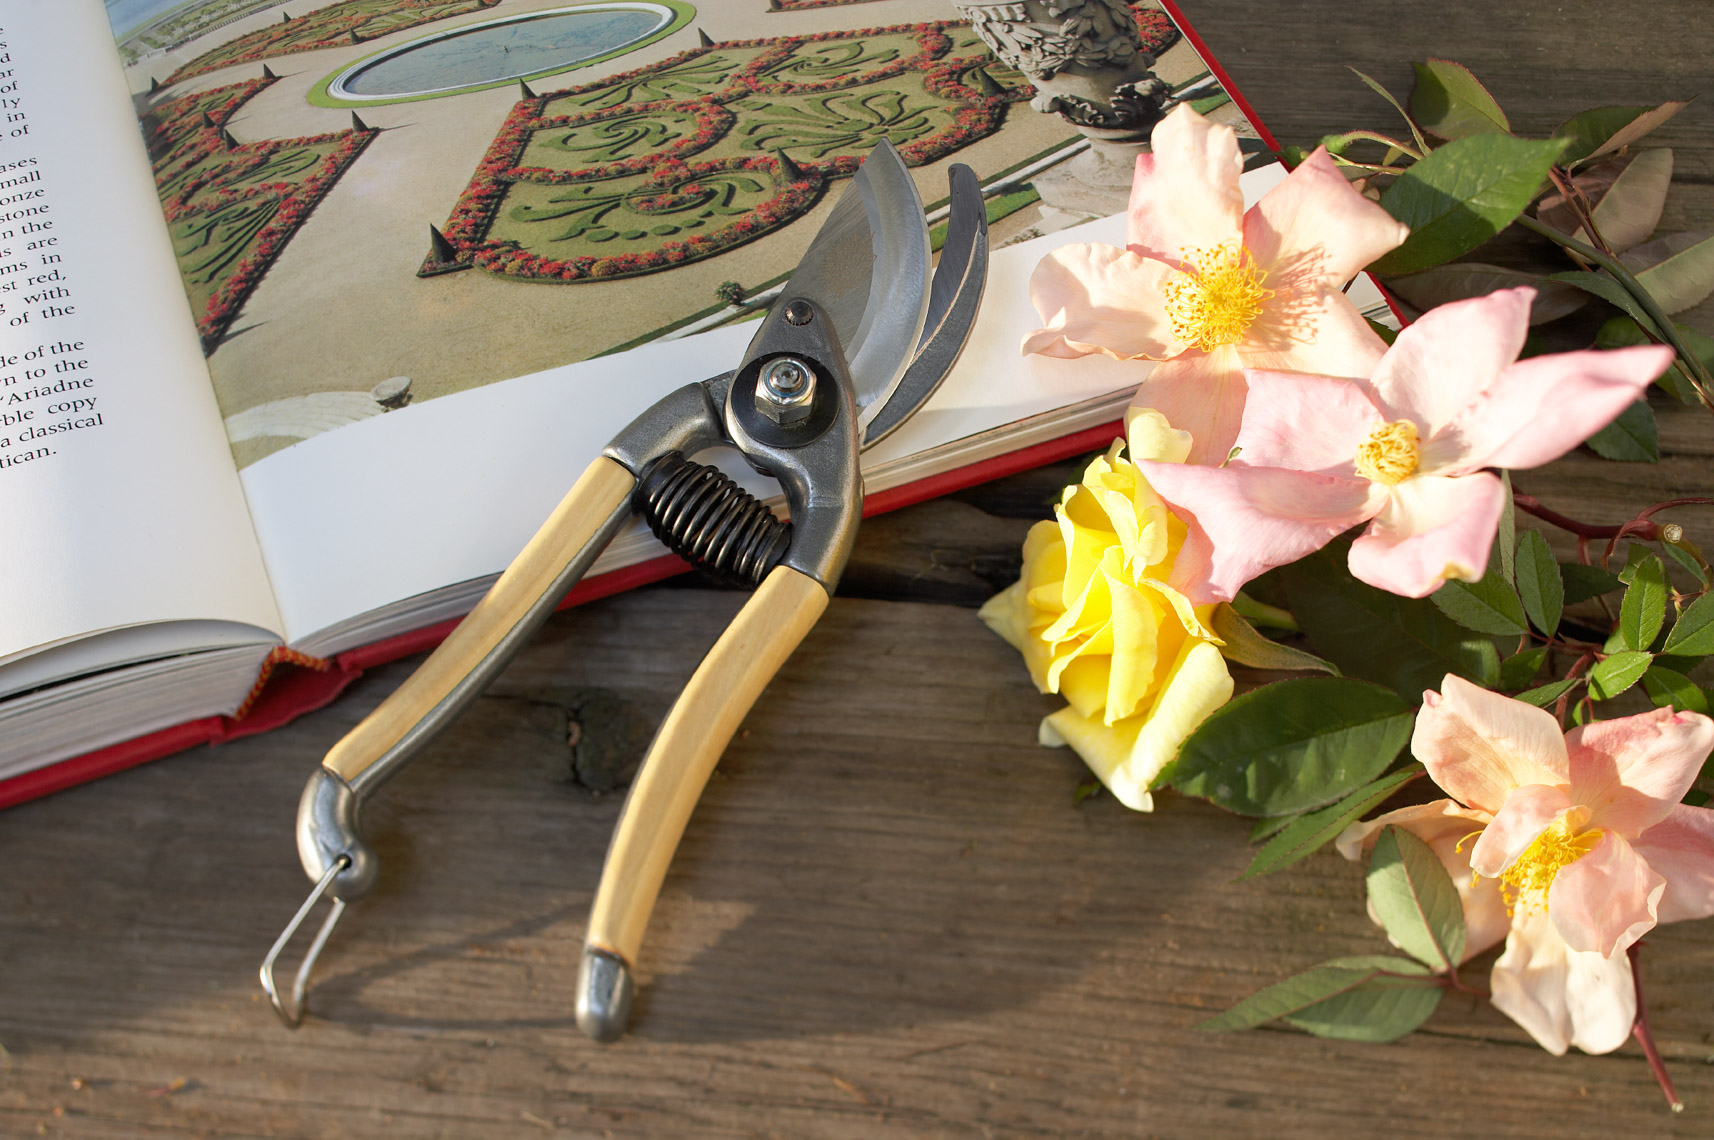 Felco pruners on book with pink roses